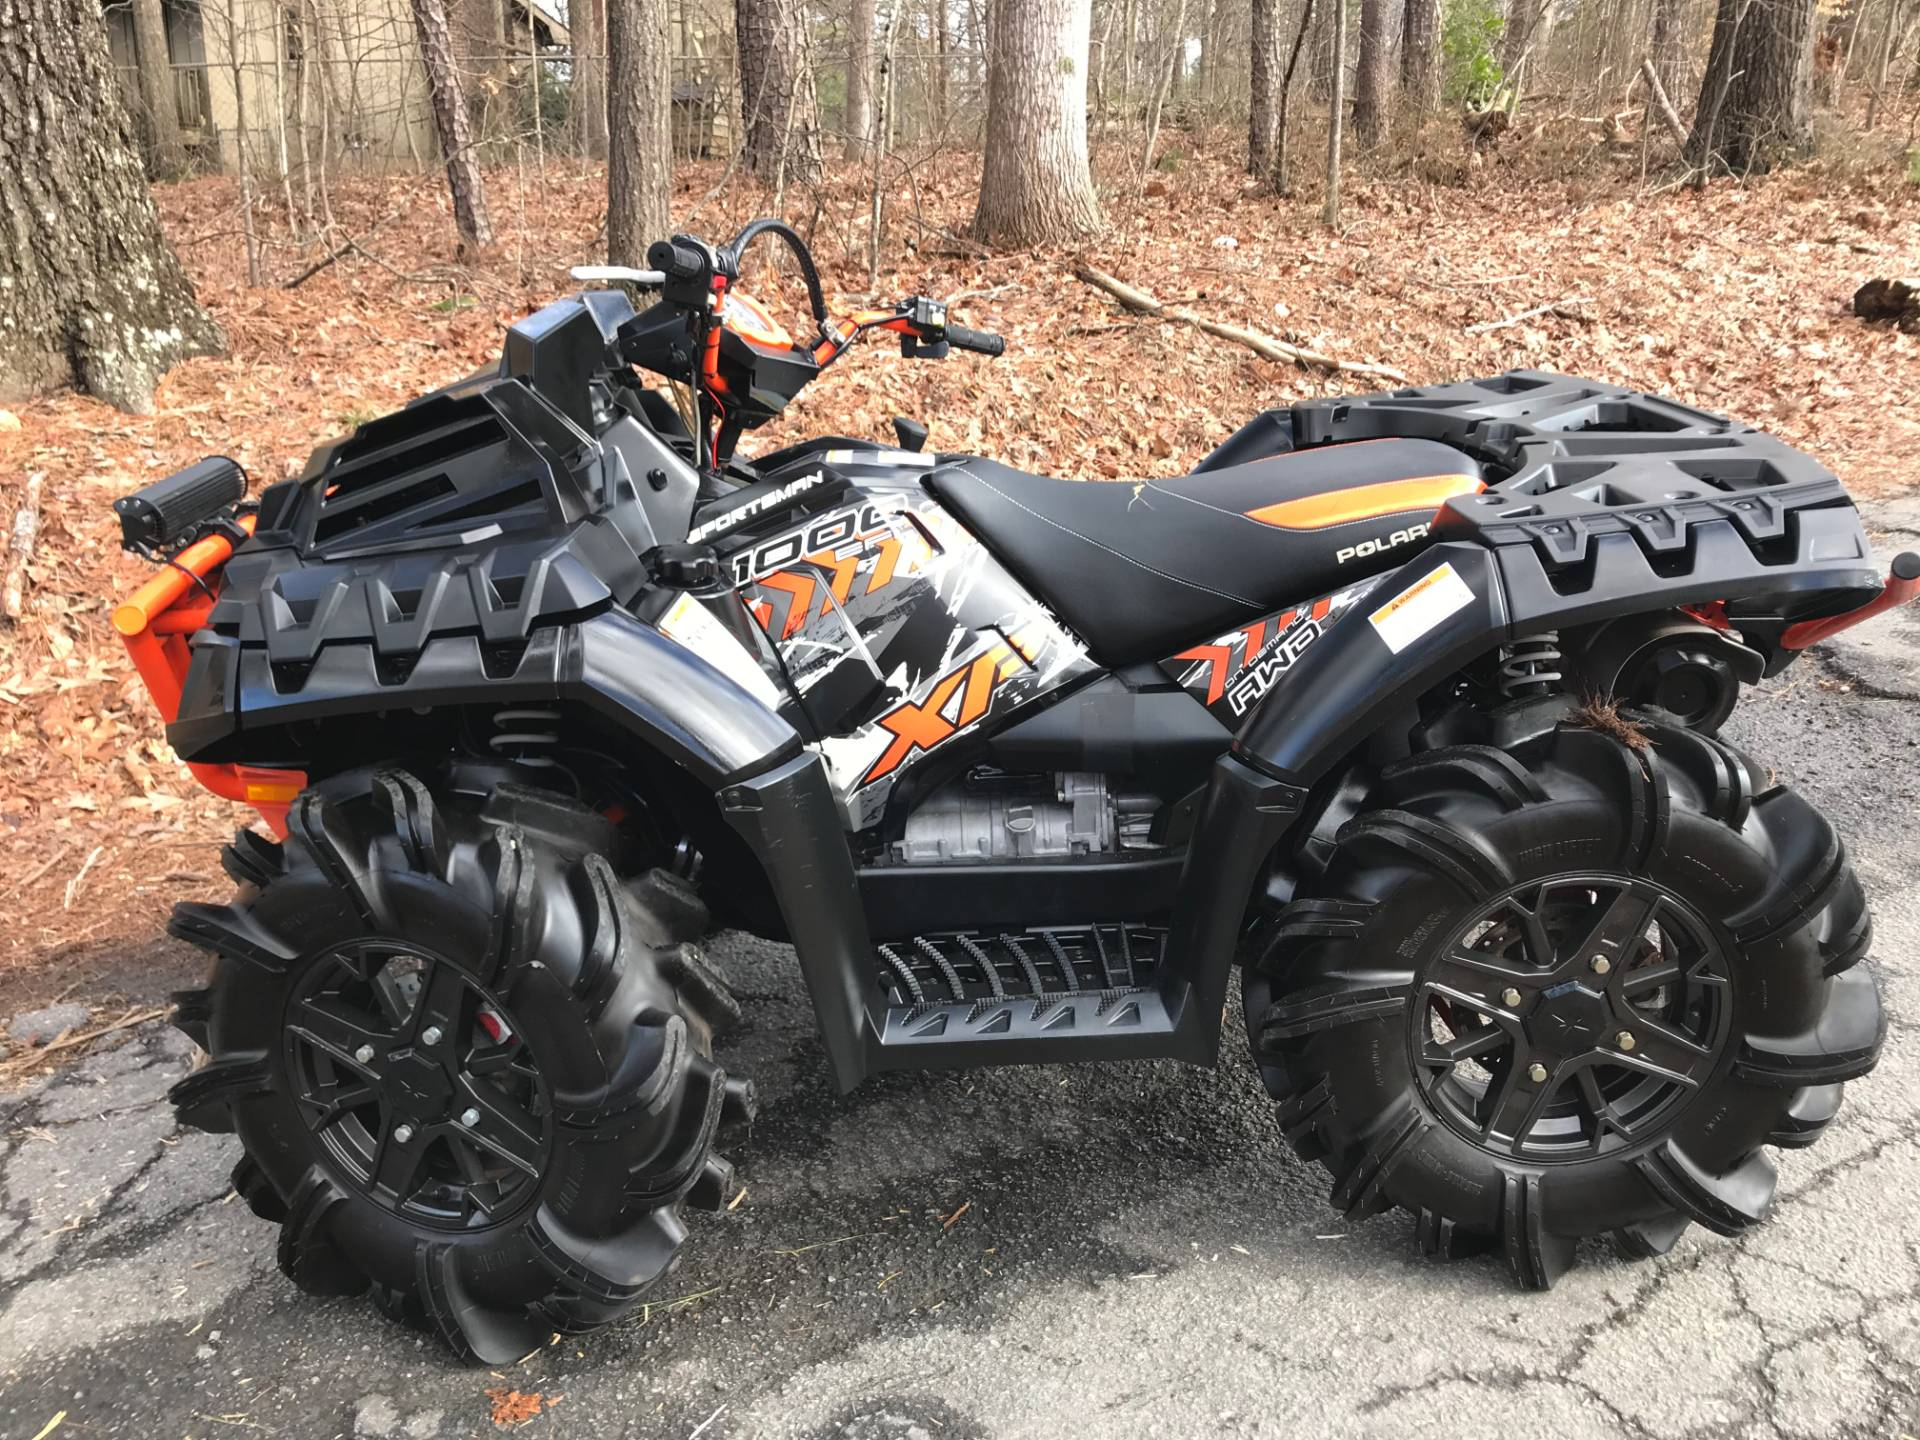 2016 POLARIS SPORTSMAN 1000 XP HIGH LIFTER in Woodstock, Georgia - Photo 2